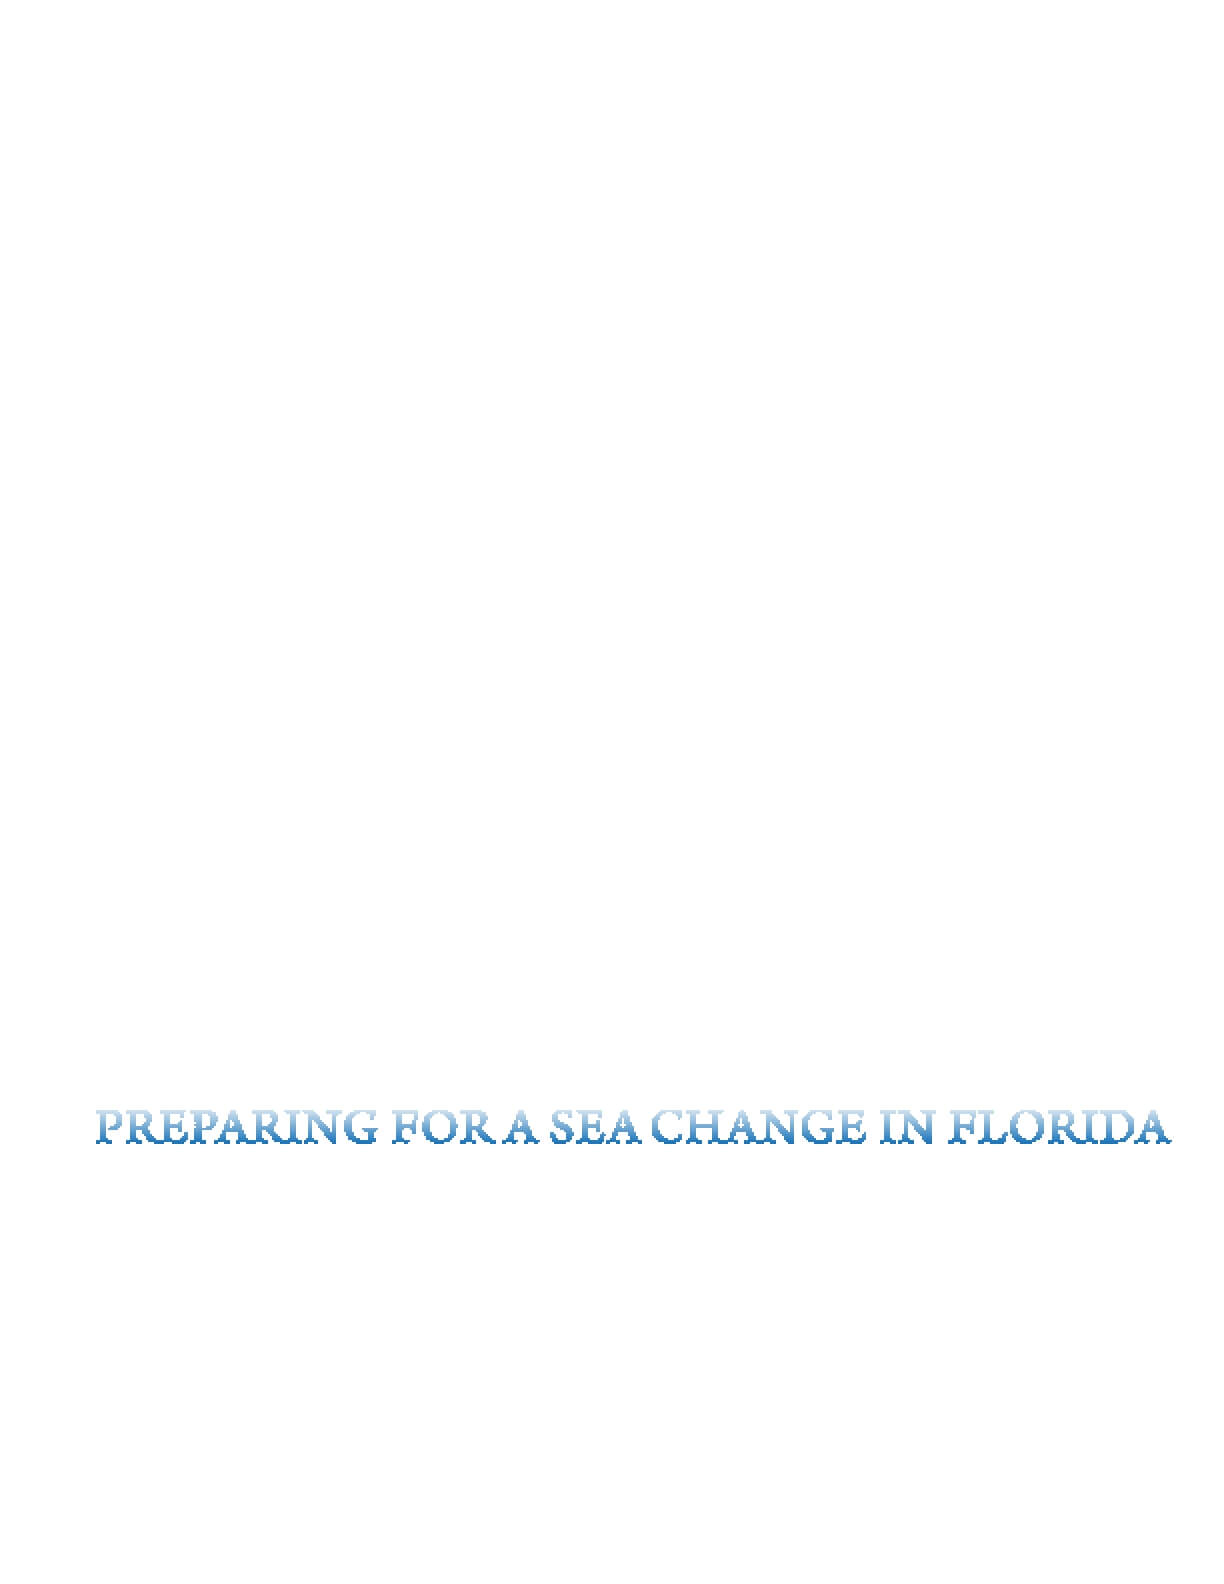 Preparing for a Sea Change in Florida: A Strategy to Cope with the Impact of Global Warming on the State's Coastal and Marine Systems